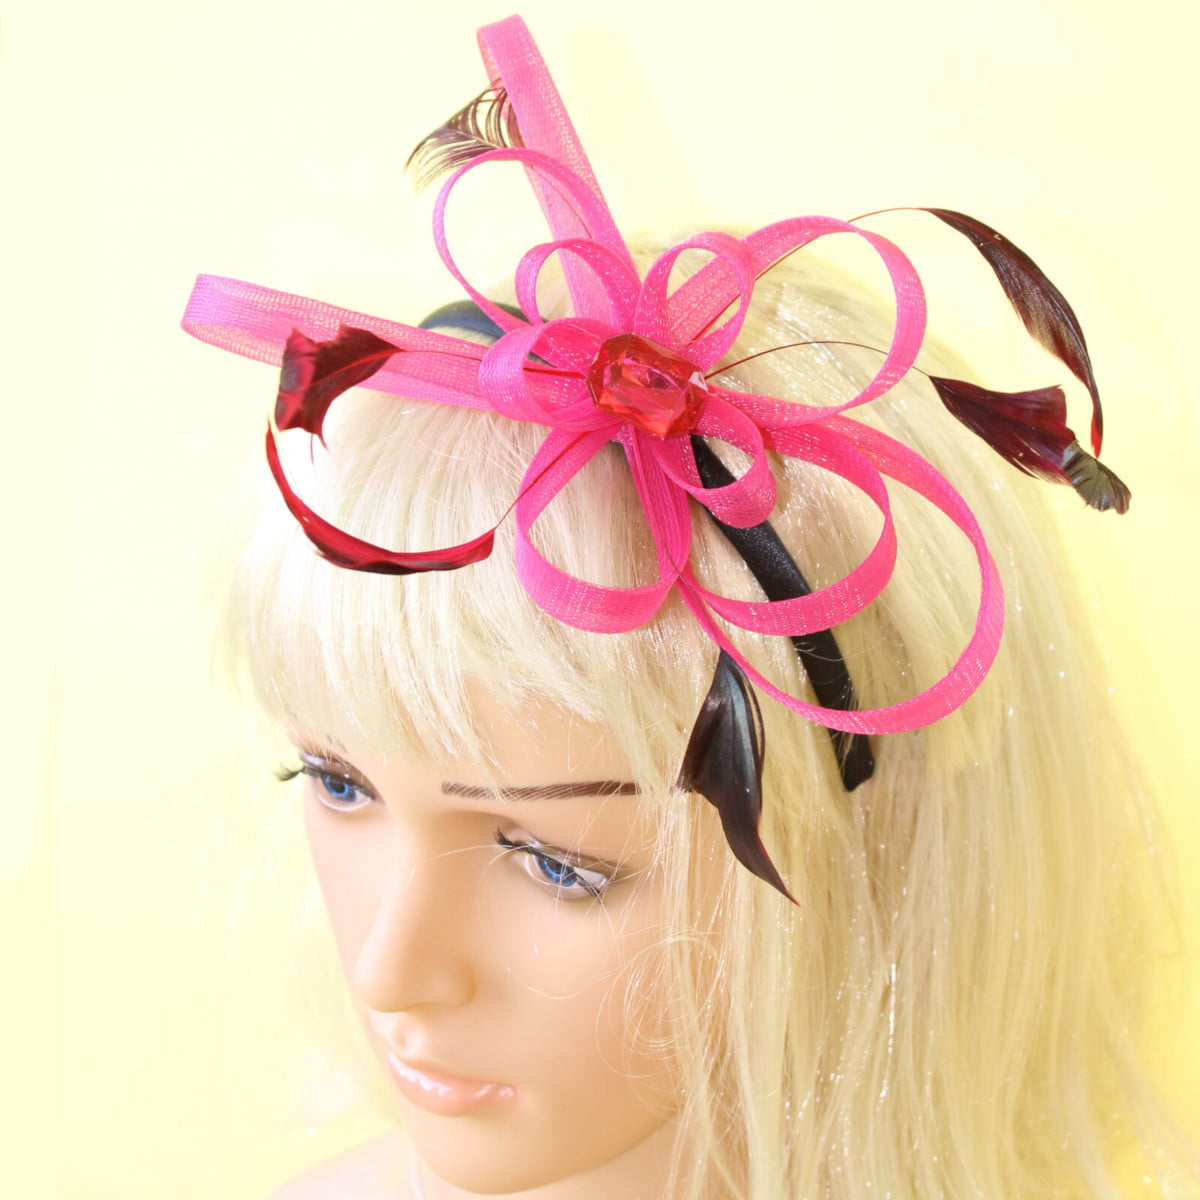 Pink fascinator with loops, gem and feathers on a black aliceband